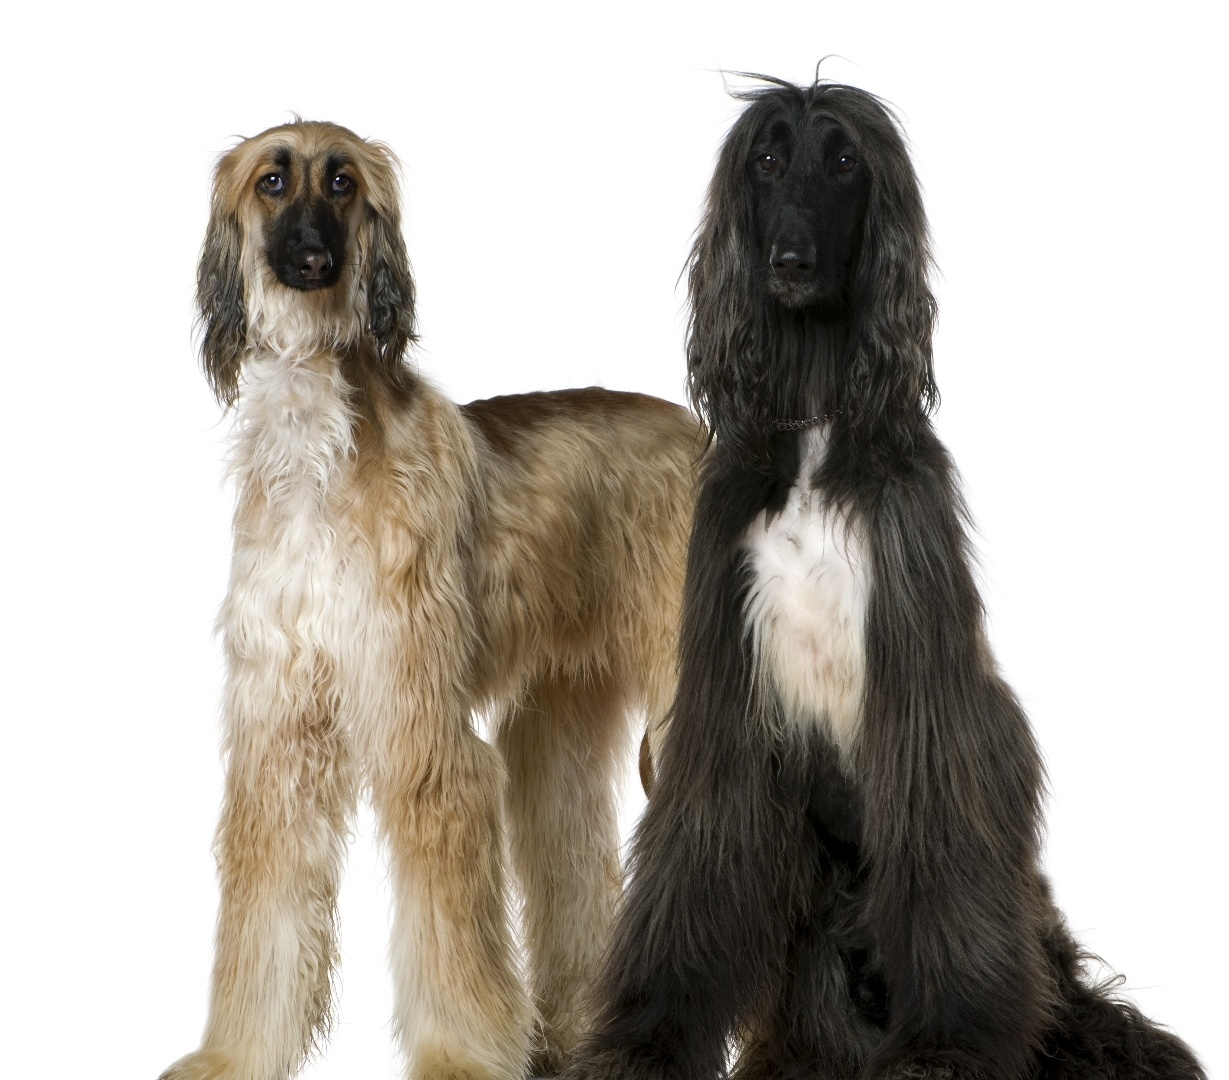 Afghan Hound | Dog Breed Gallery